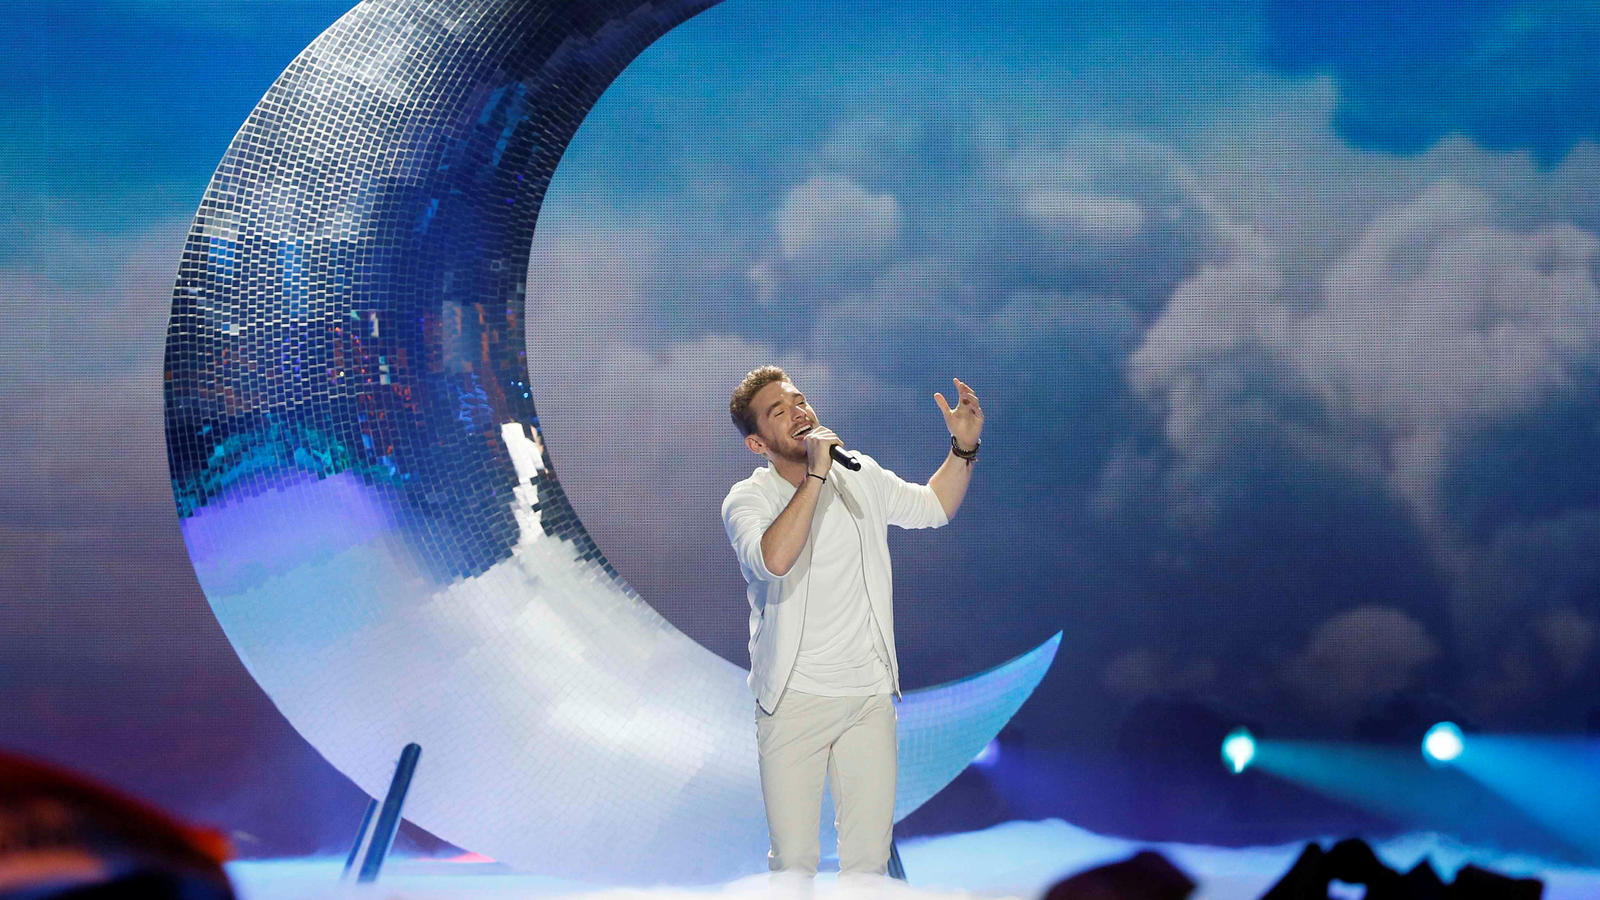 "Austria's Nathan Trent performs the song ""Running On Air"" during the Eurovision Song Contest 2017 Grand Final at the International Exhibi-tion Centre in Kiev, Ukraine, May 13, 2017 REUTERS/Gleb Garanich     TPX IMAGES OF THE DAY"